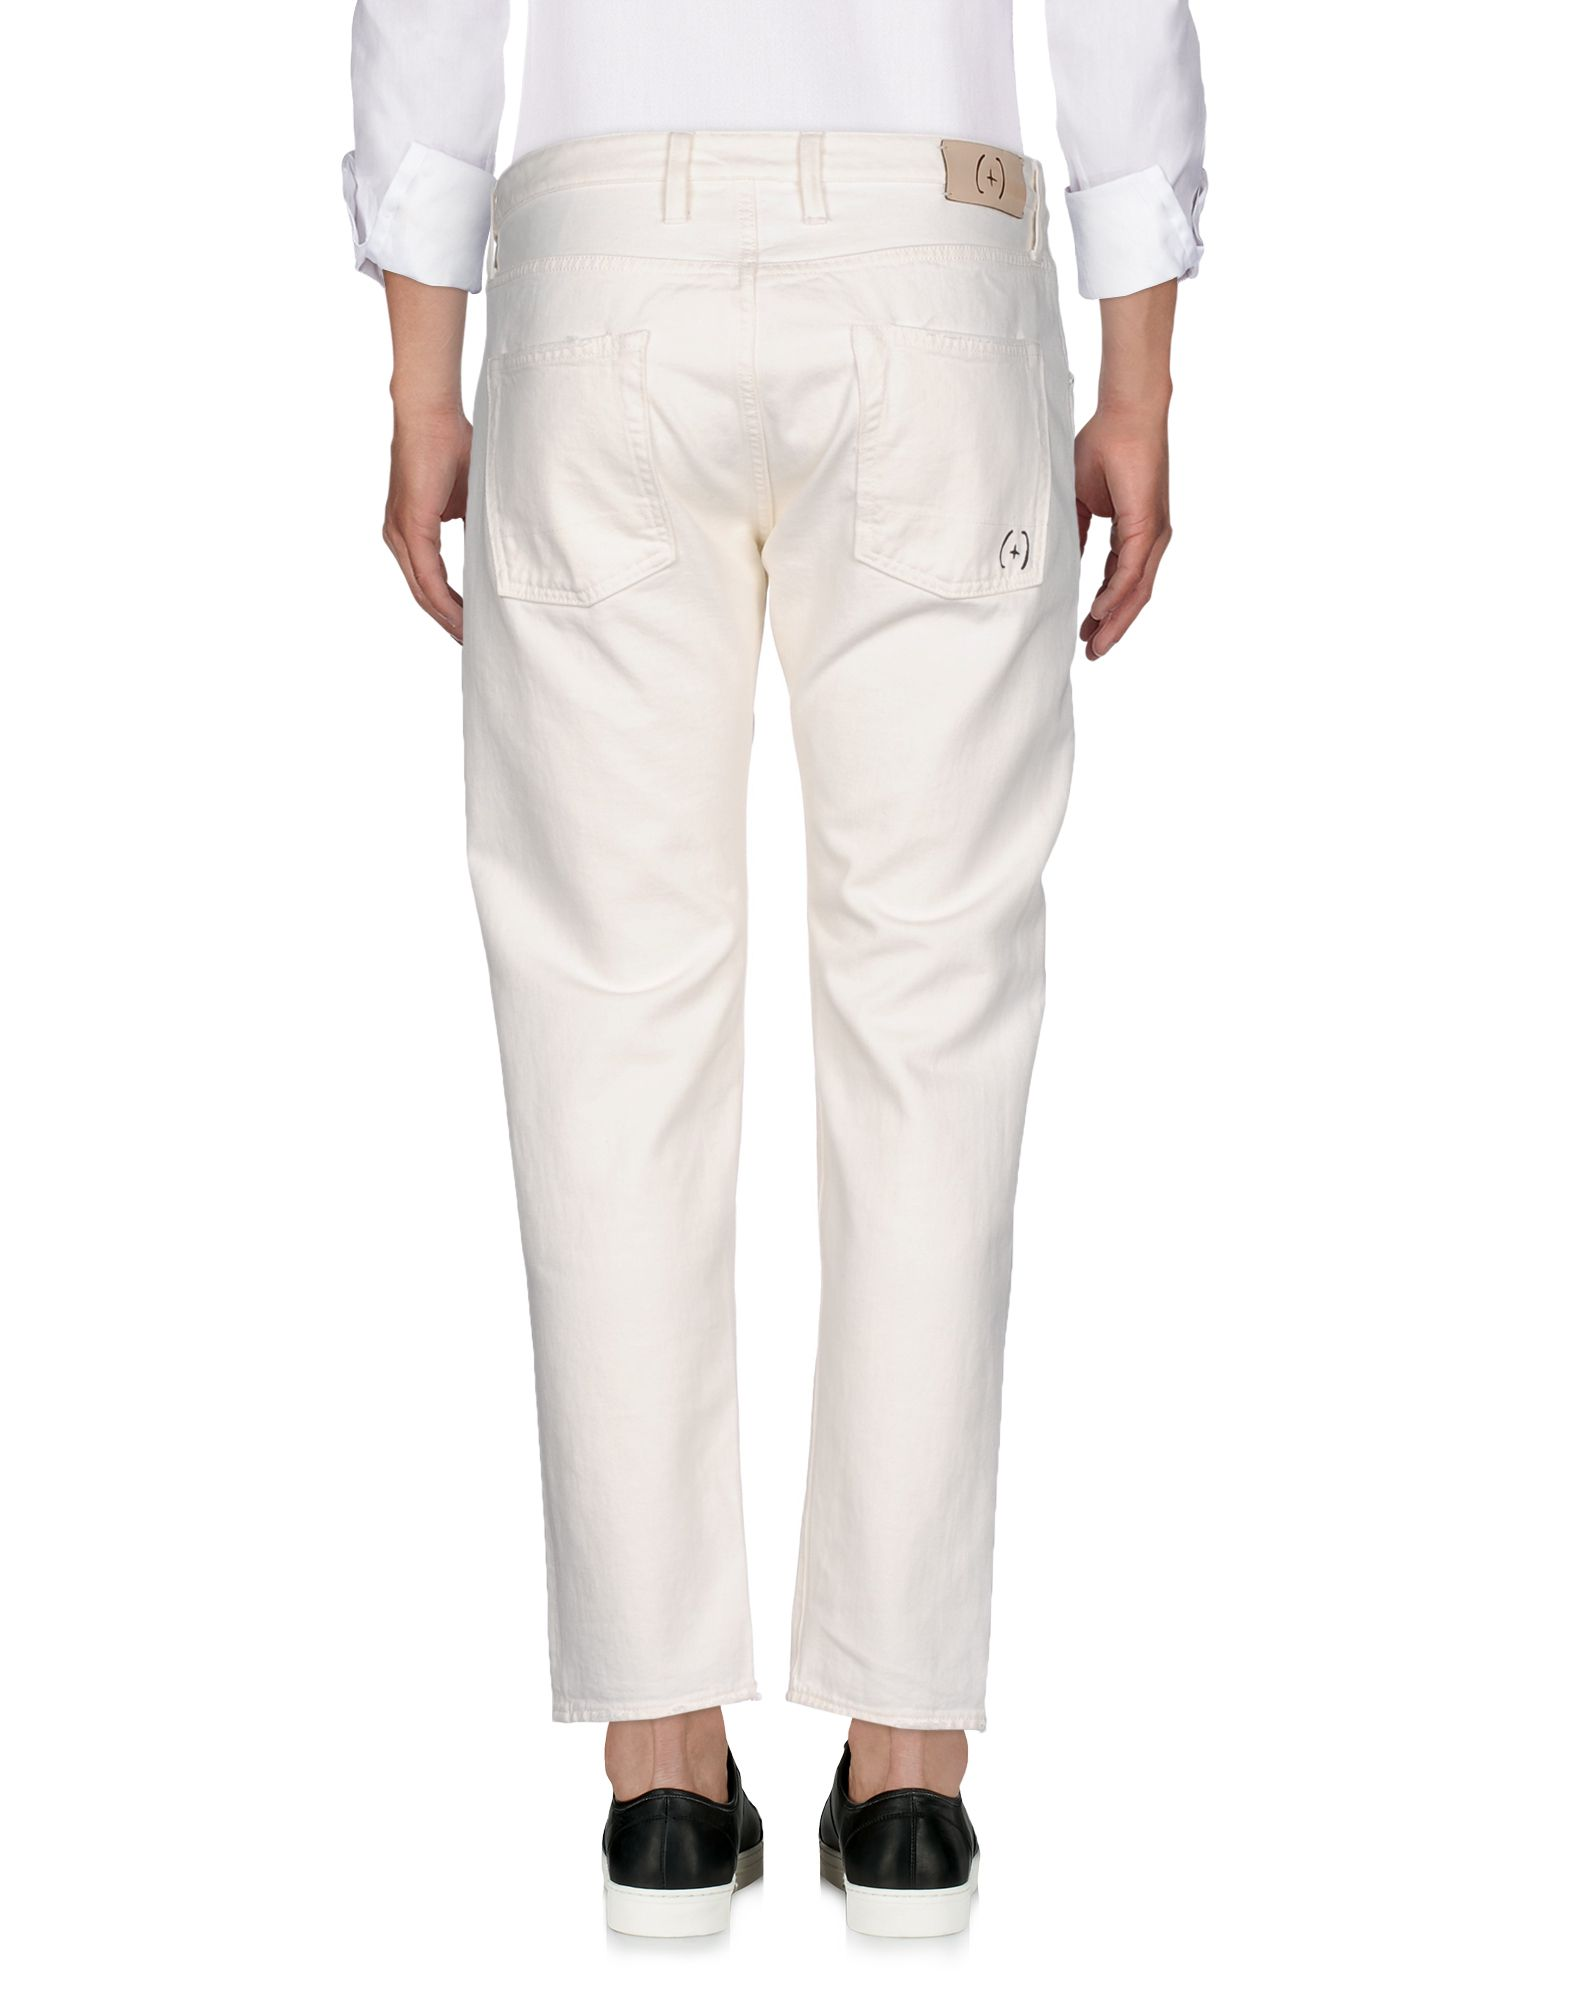 Pantaloni Jeans People (+) People Jeans Uomo - 42667833XE 91a0c7